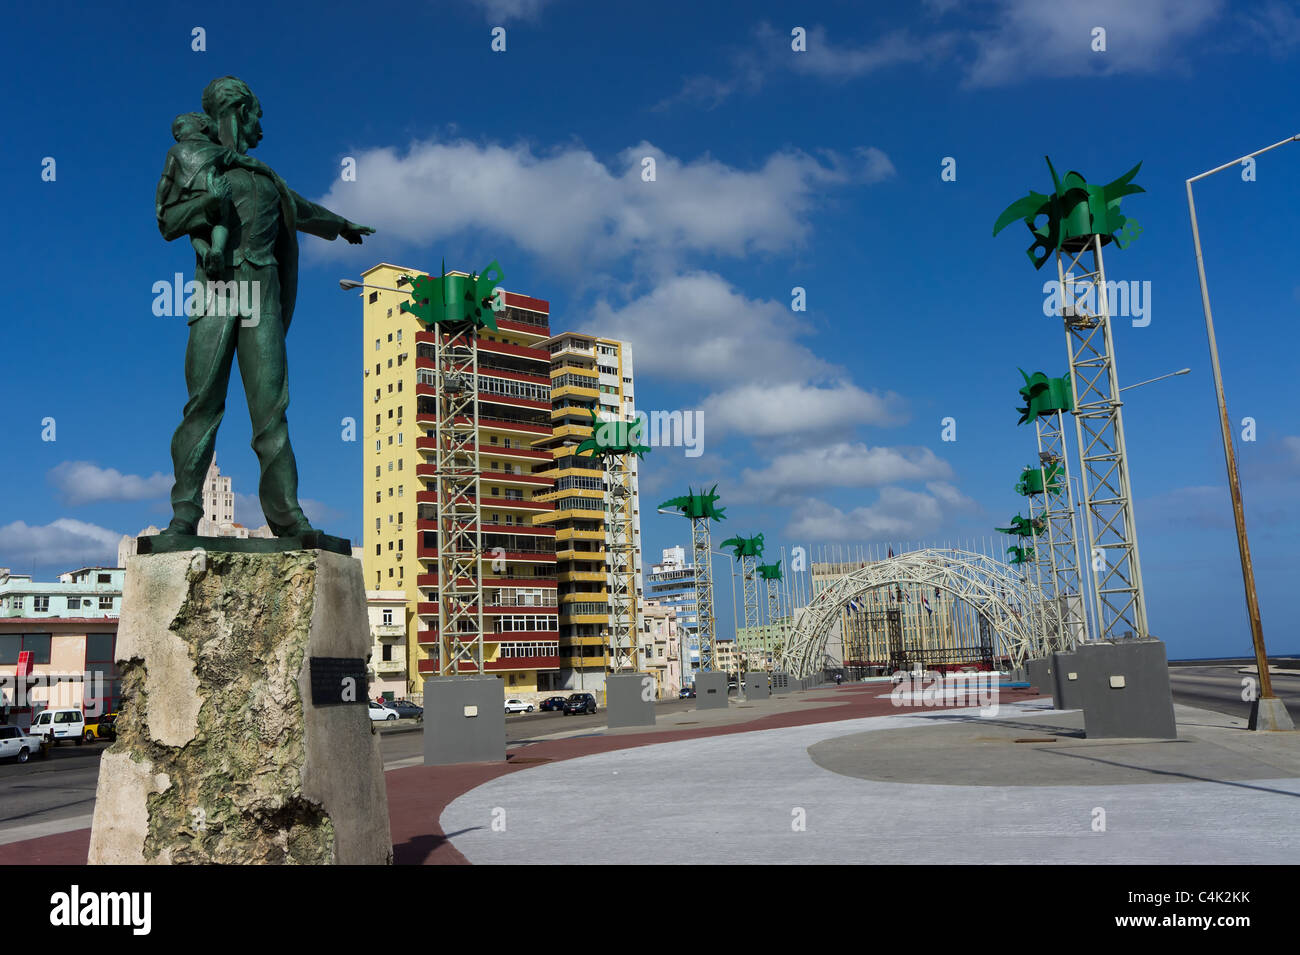 José Martí Anti-Imperialist Plaza, the statue of Jose Marti seems to be pointing to the U.S. Special Interests - Stock Image